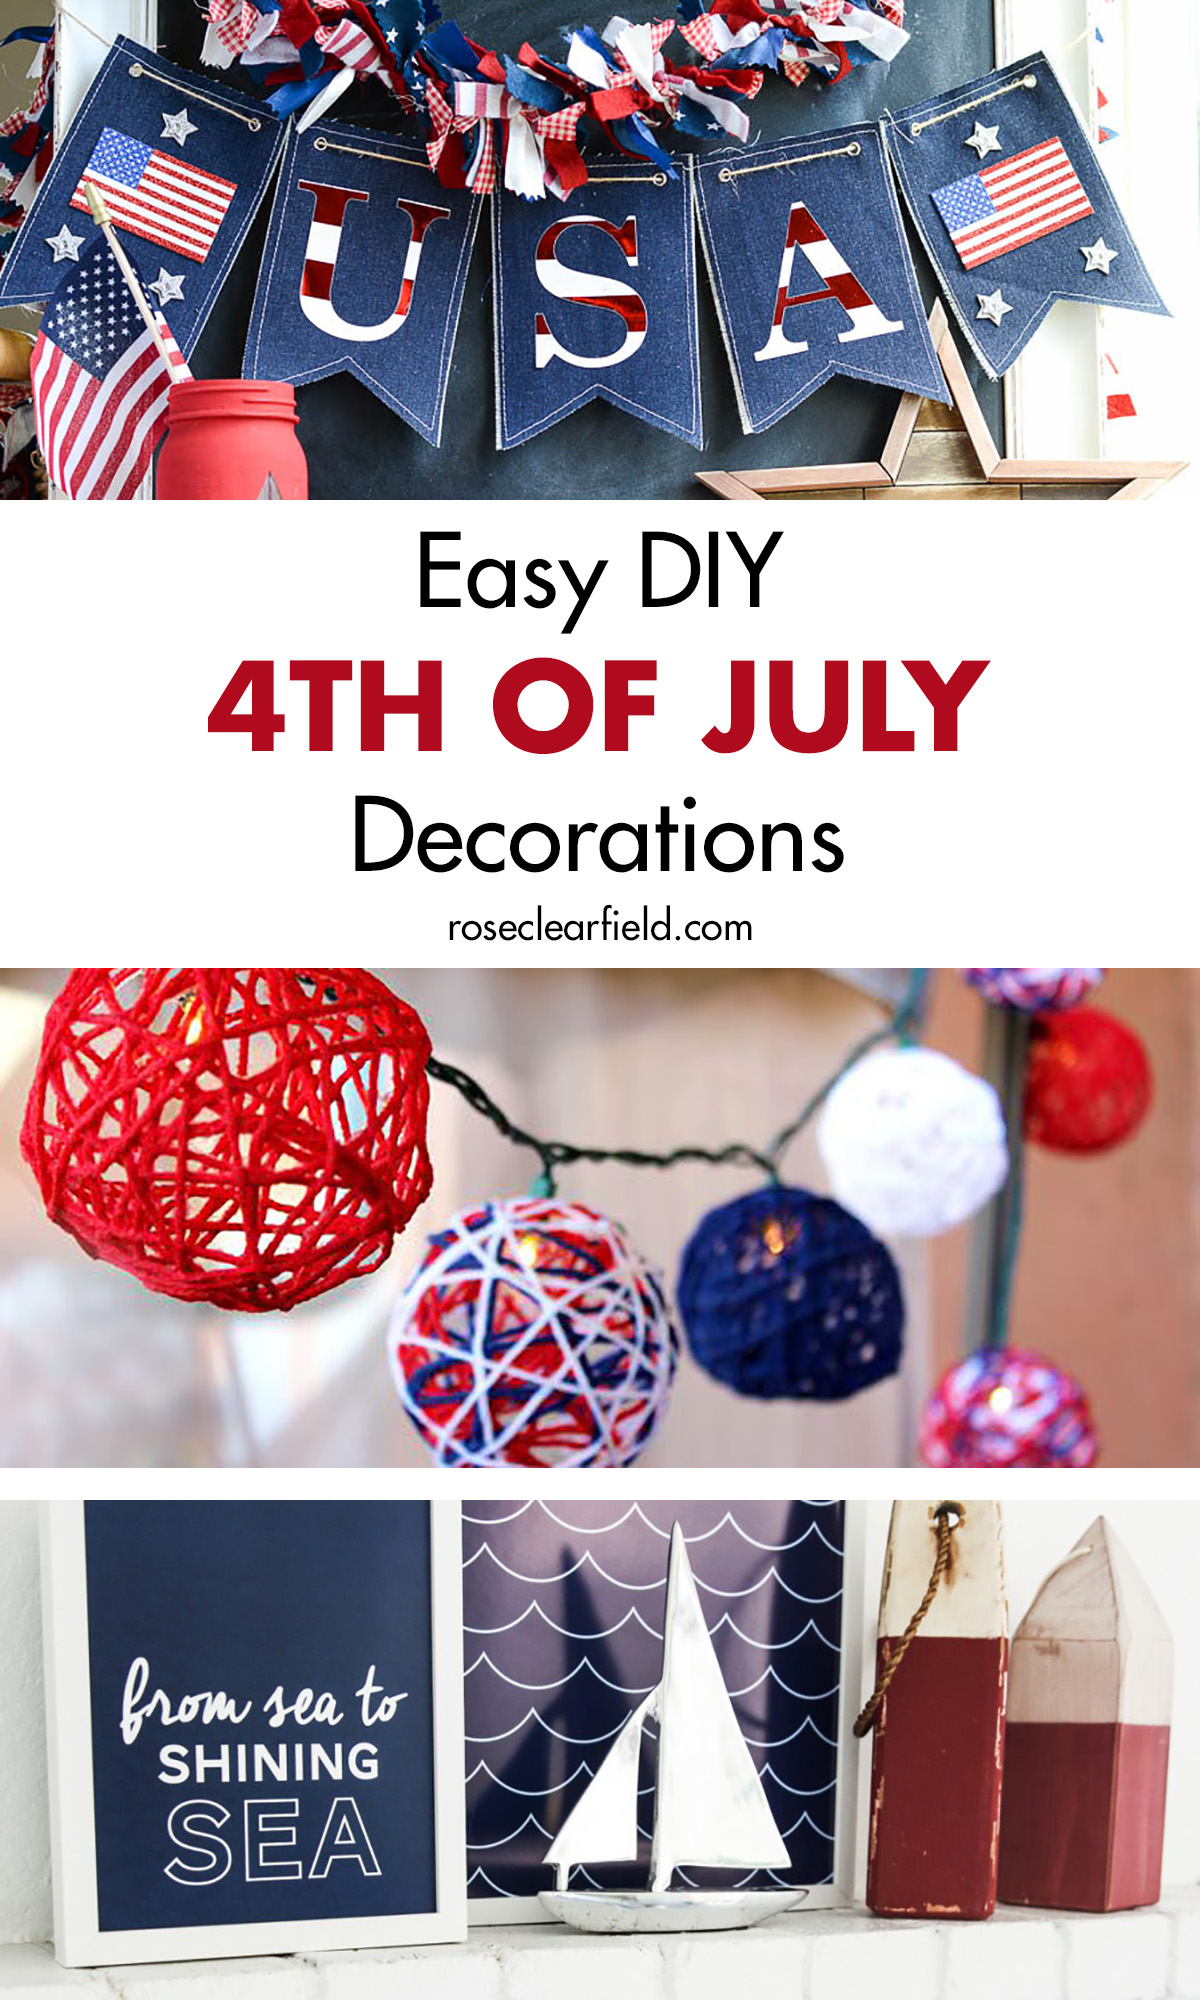 Easy Diy Fourth Of July Decorations Rose Clearfield